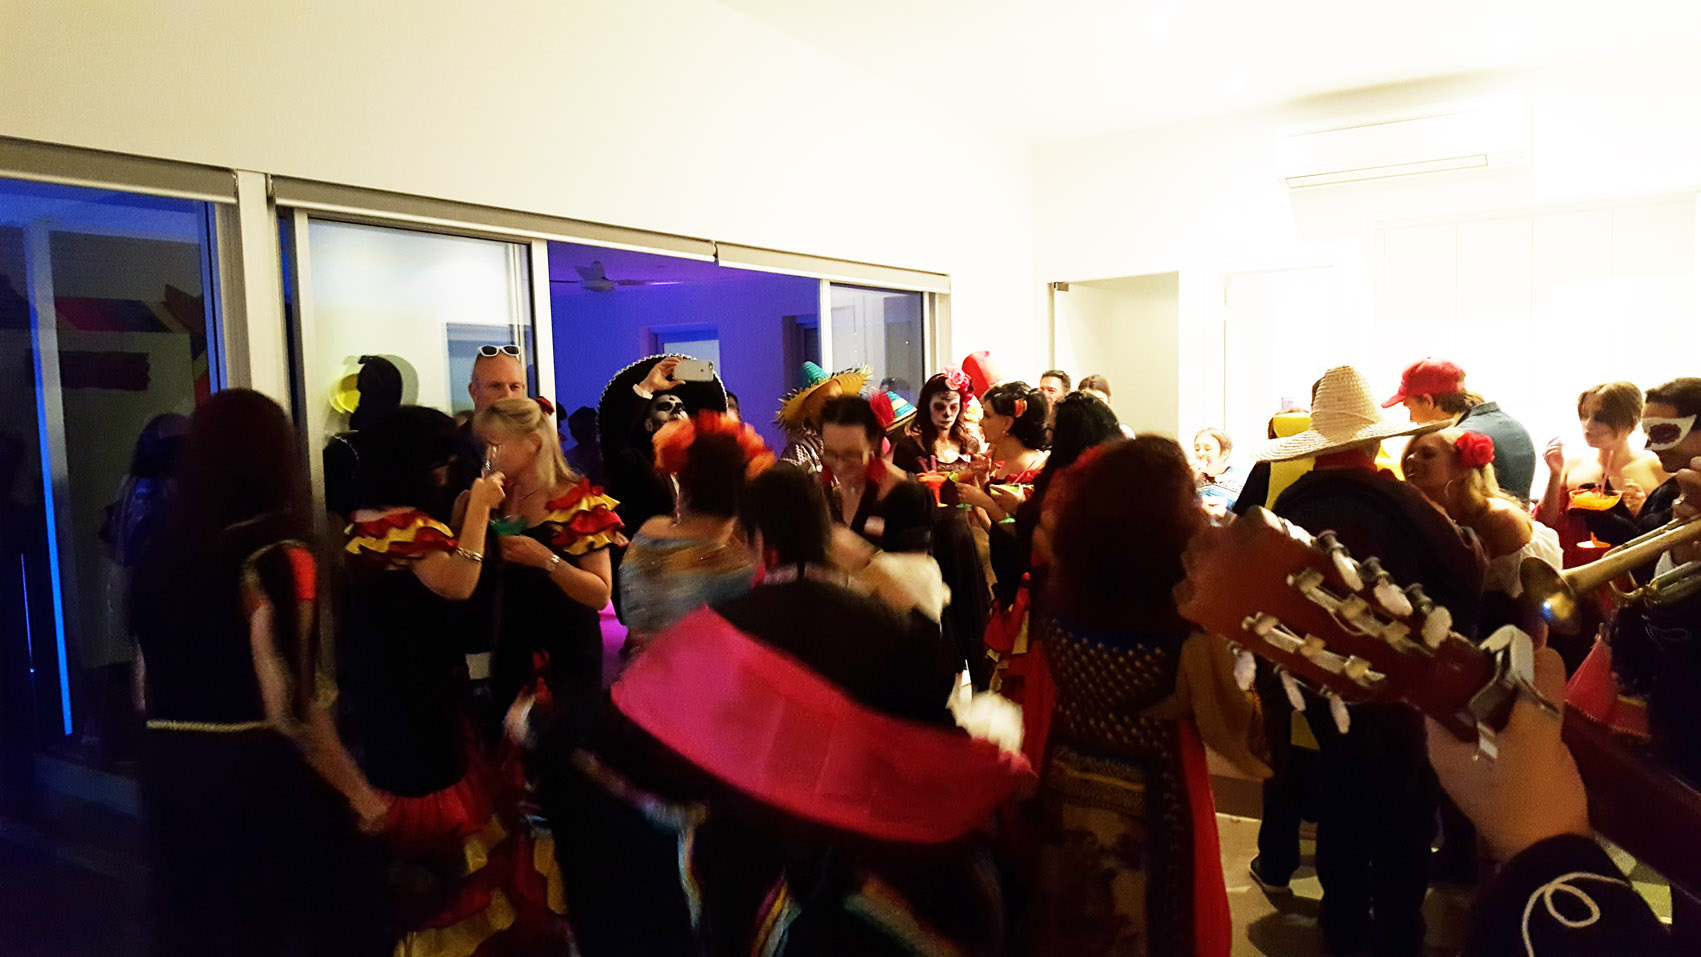 Mexican Birthday Private Function Adelaide Band Australia, Perth Sydney Melbourne Darwin Brisbane